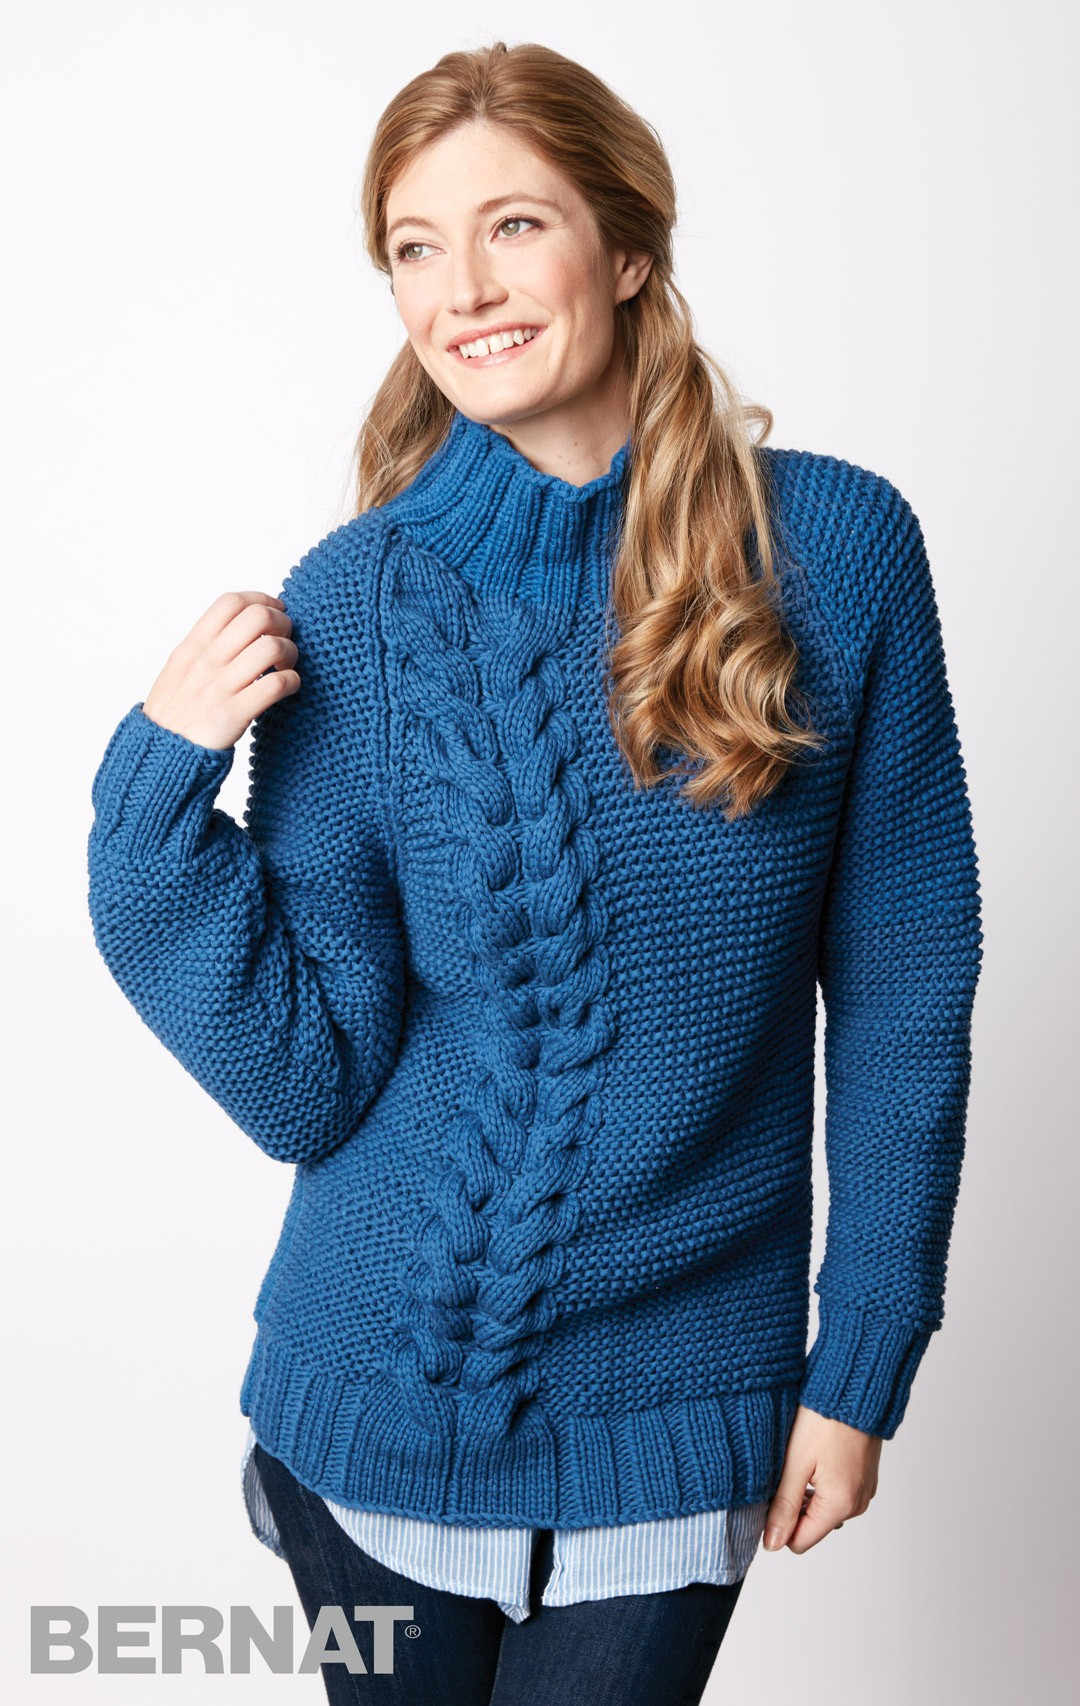 Free Pullover Knitting Patterns : Bernat Bright Side Knit Pullover, Knit Pattern Yarnspirations